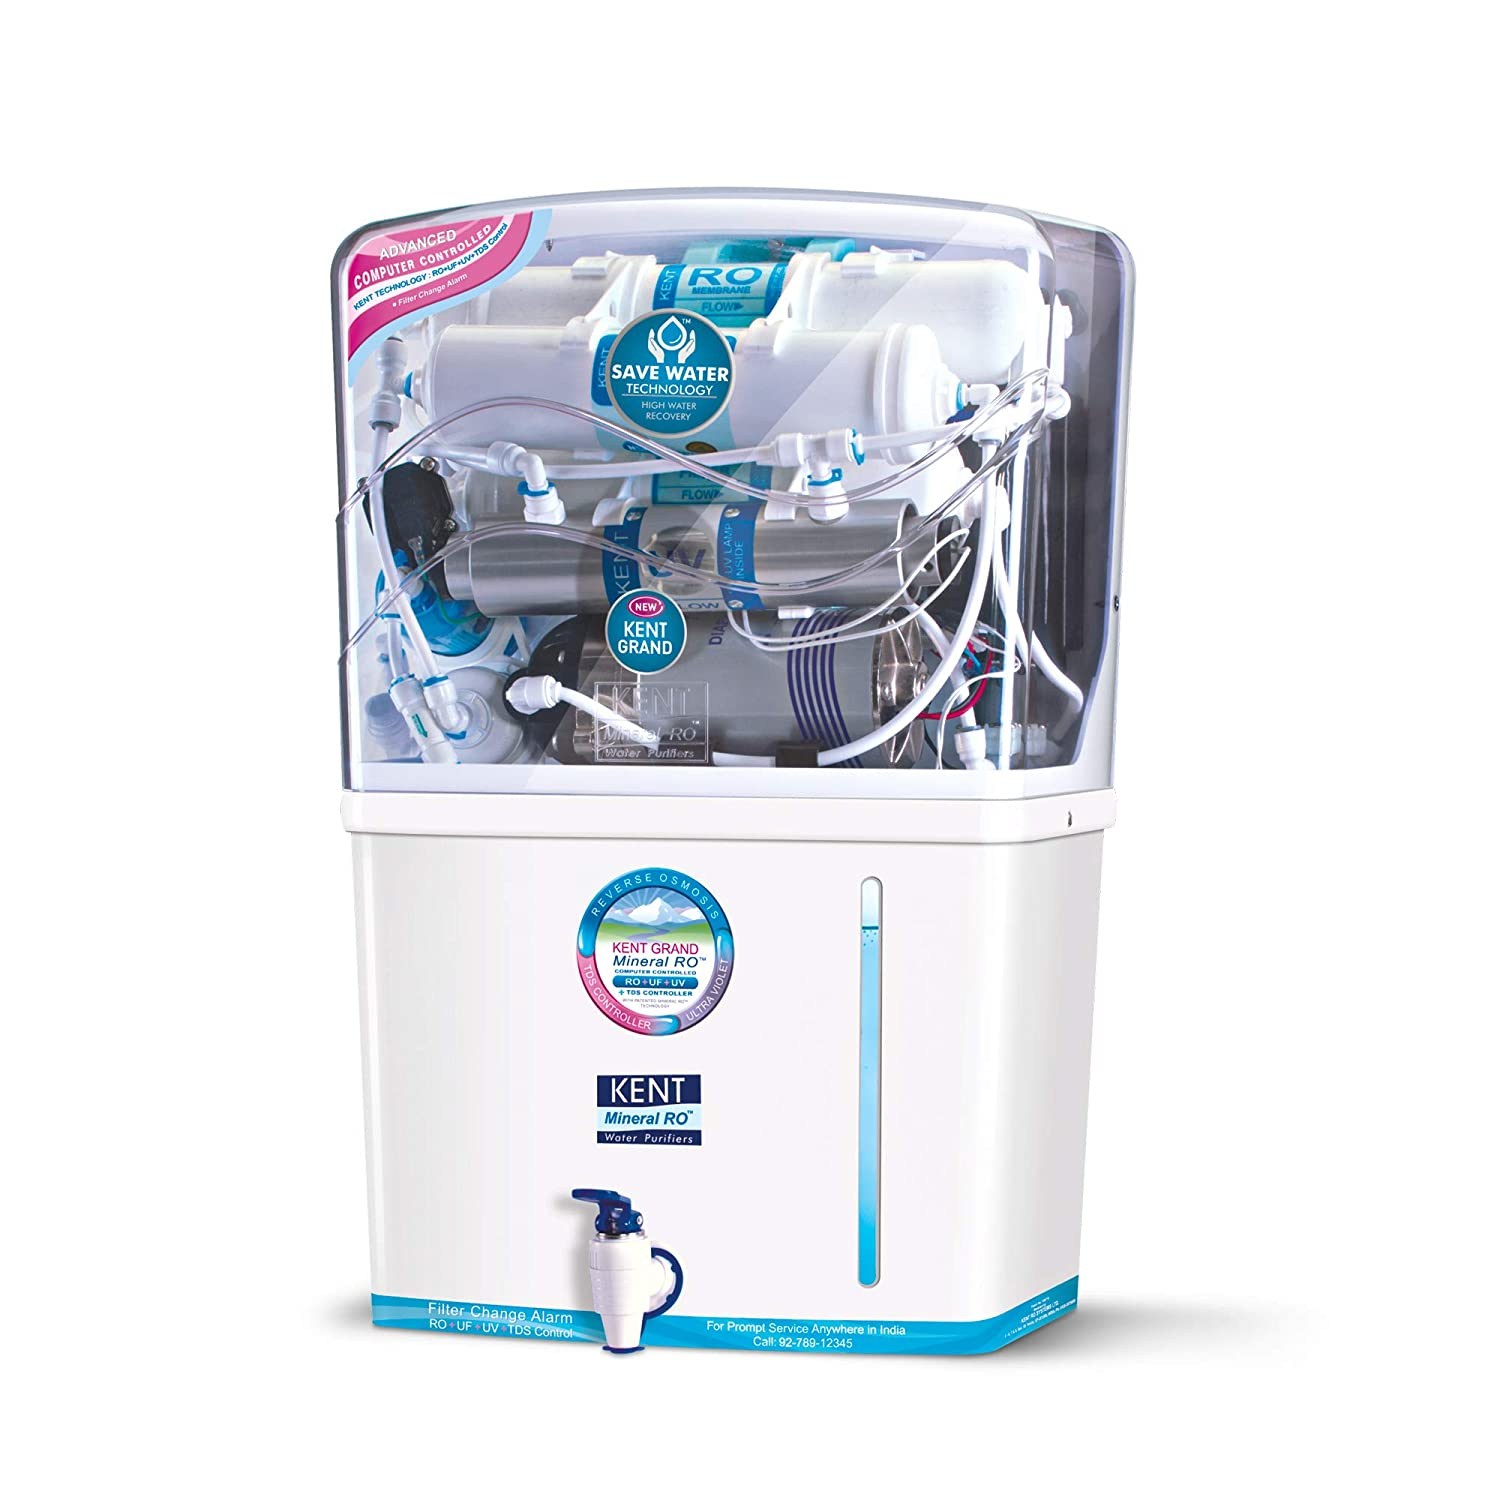 KENT New Grand 8 Litres Wall-Mountable water purifier